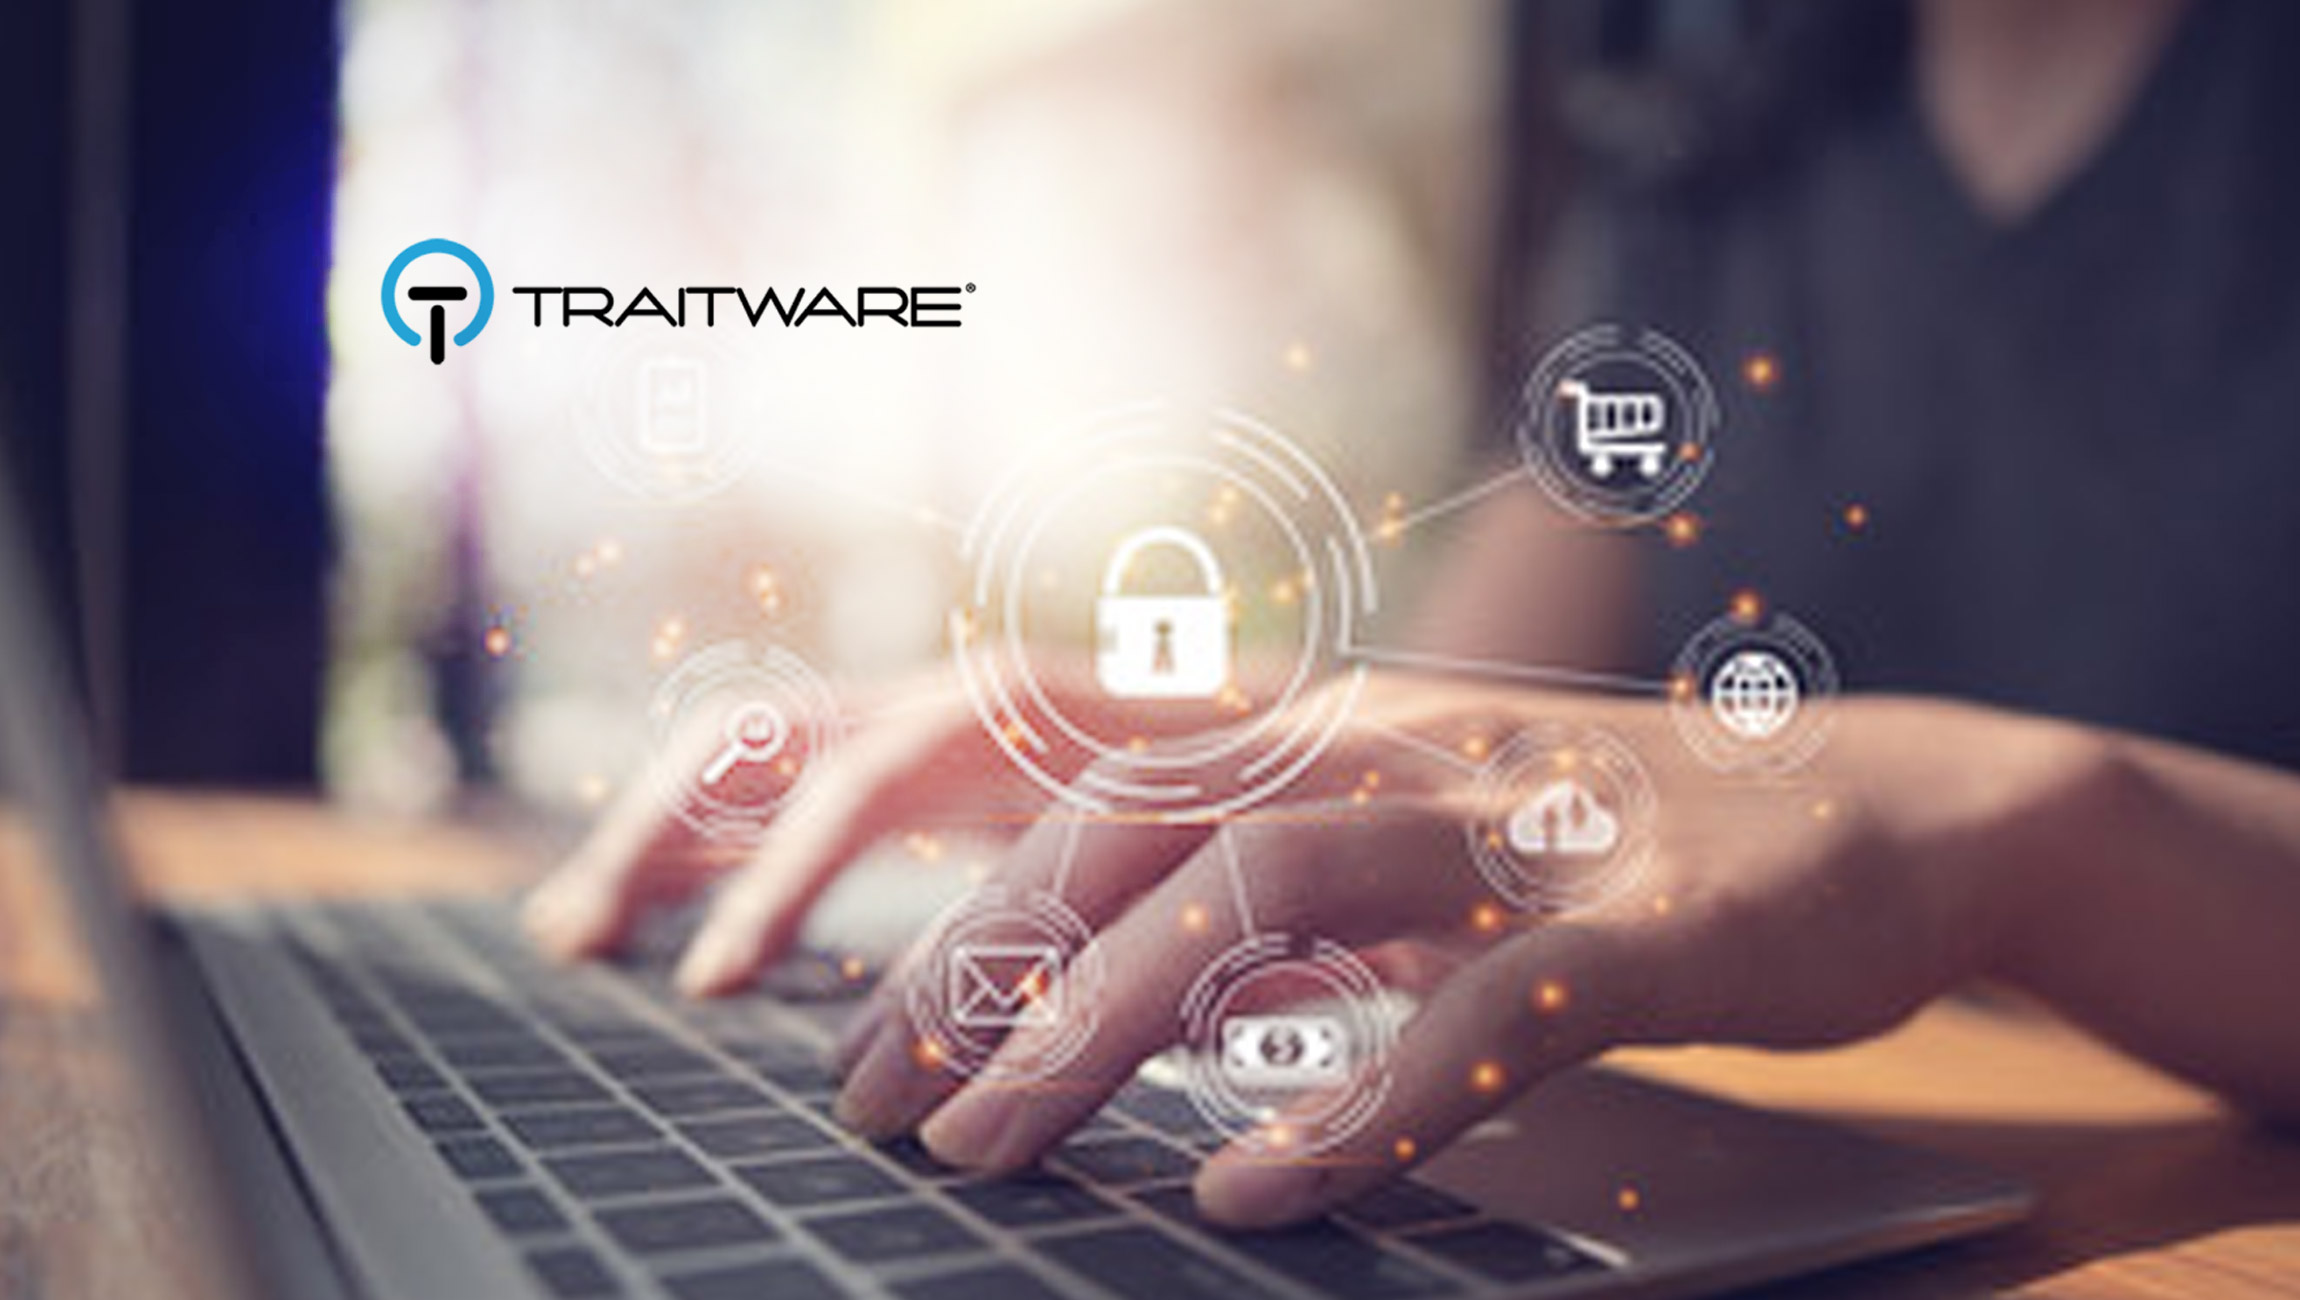 TraitWare Completes Its SOC 2 Type 1 Certification